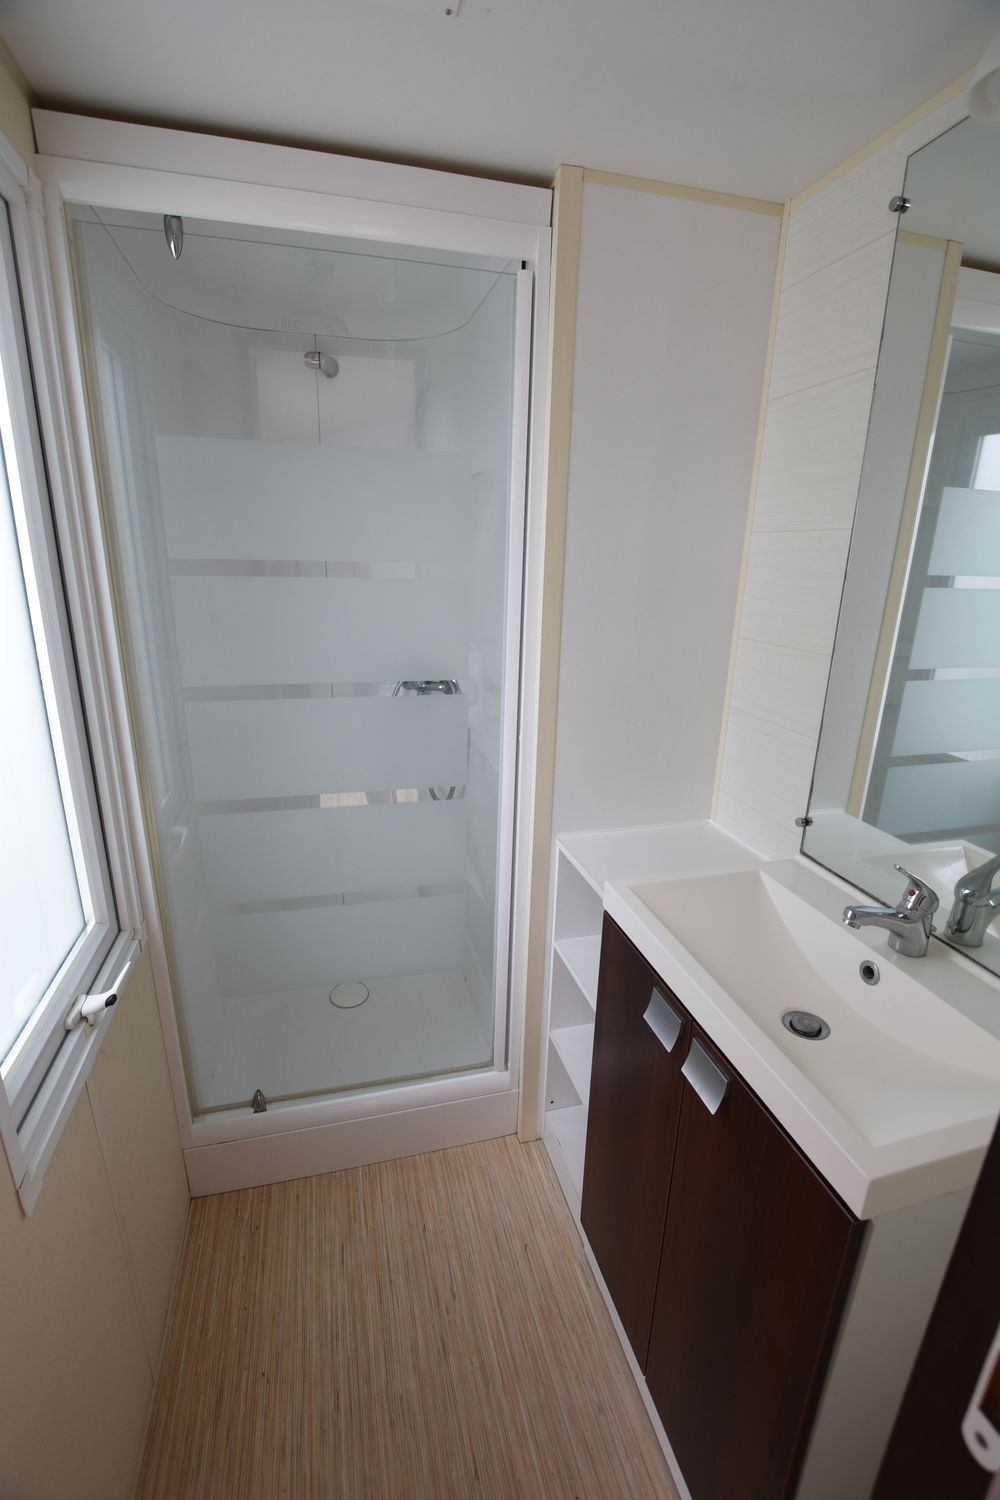 Ohara 8.34 - 2008 - Mobil home d'occasion - 8 500€ - Zen Mobil homes